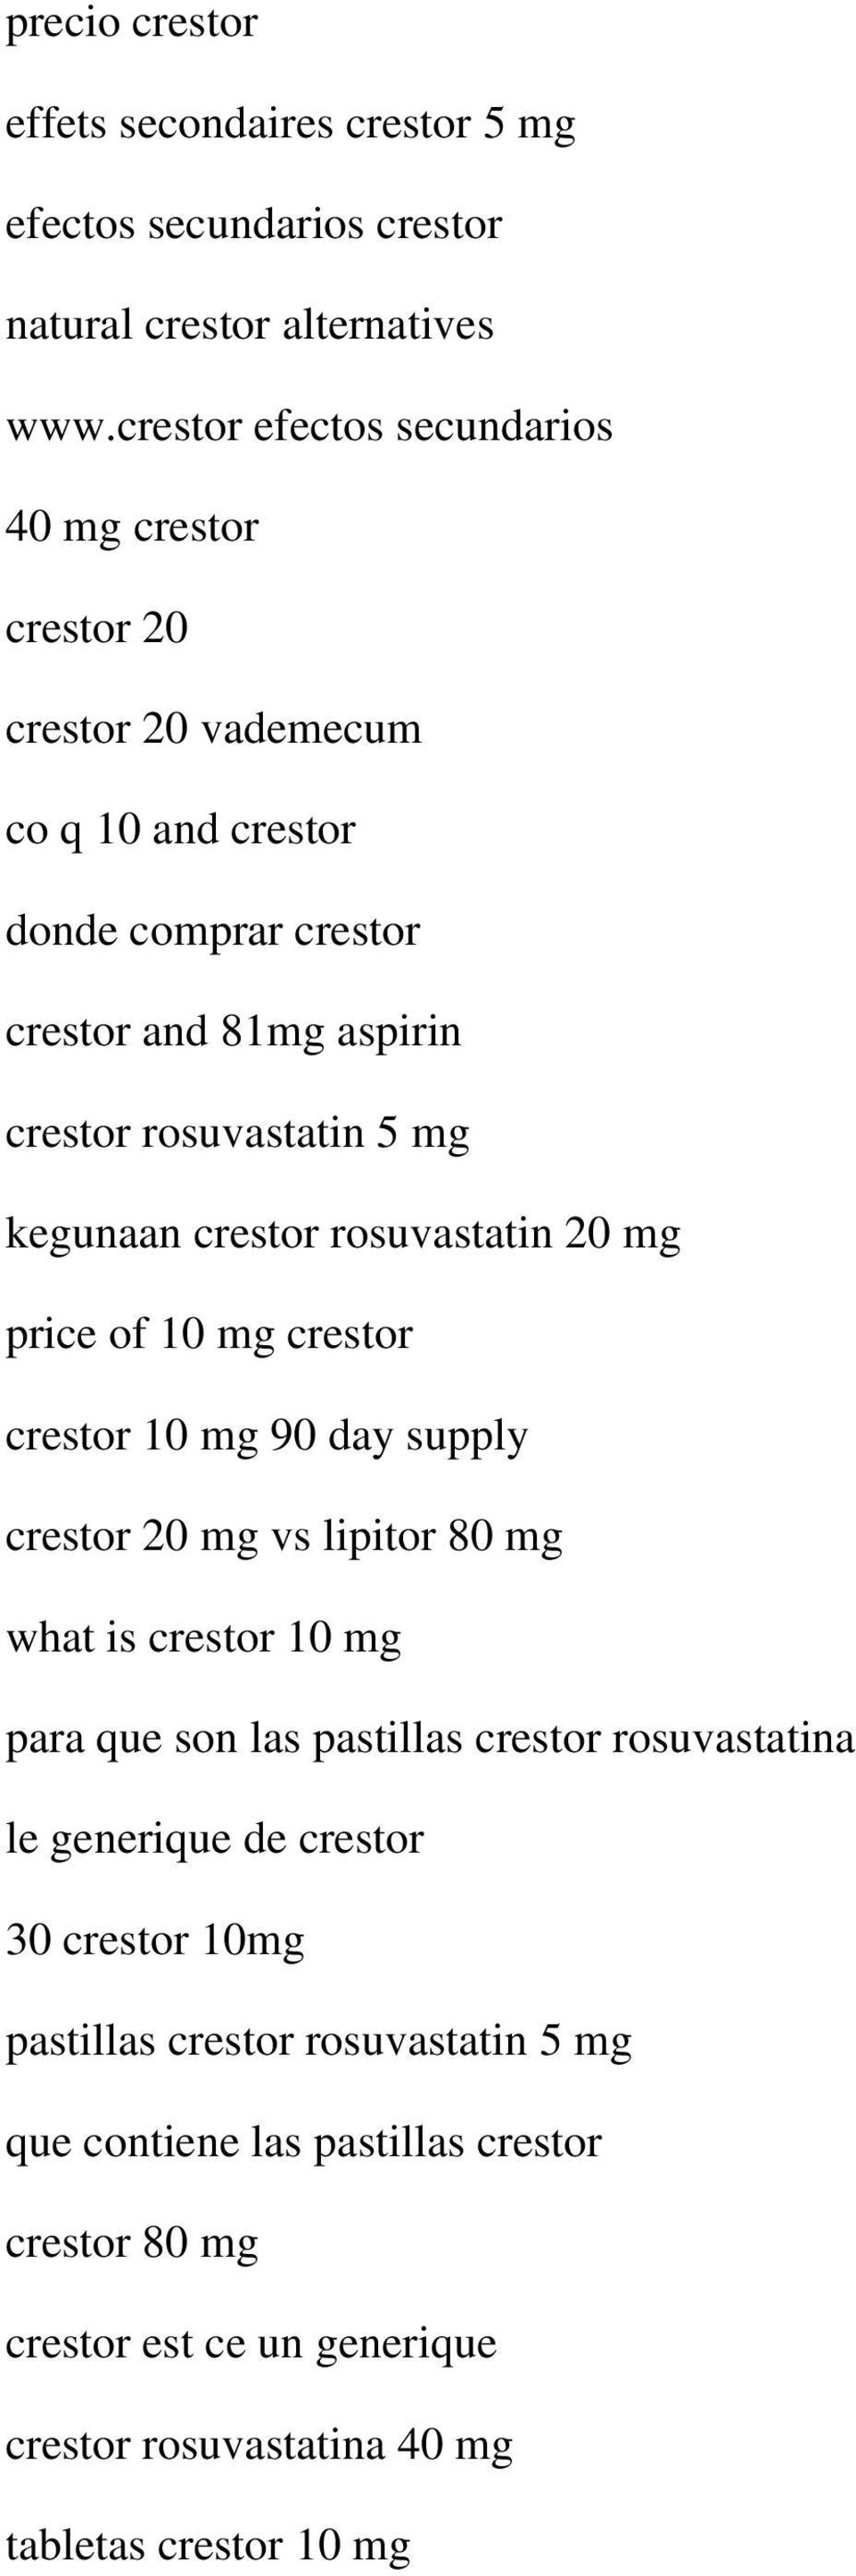 kegunaan crestor rosuvastatin 20 mg price of 10 mg crestor crestor 10 mg 90 day supply crestor 20 mg vs lipitor 80 mg what is crestor 10 mg para que son las pastillas